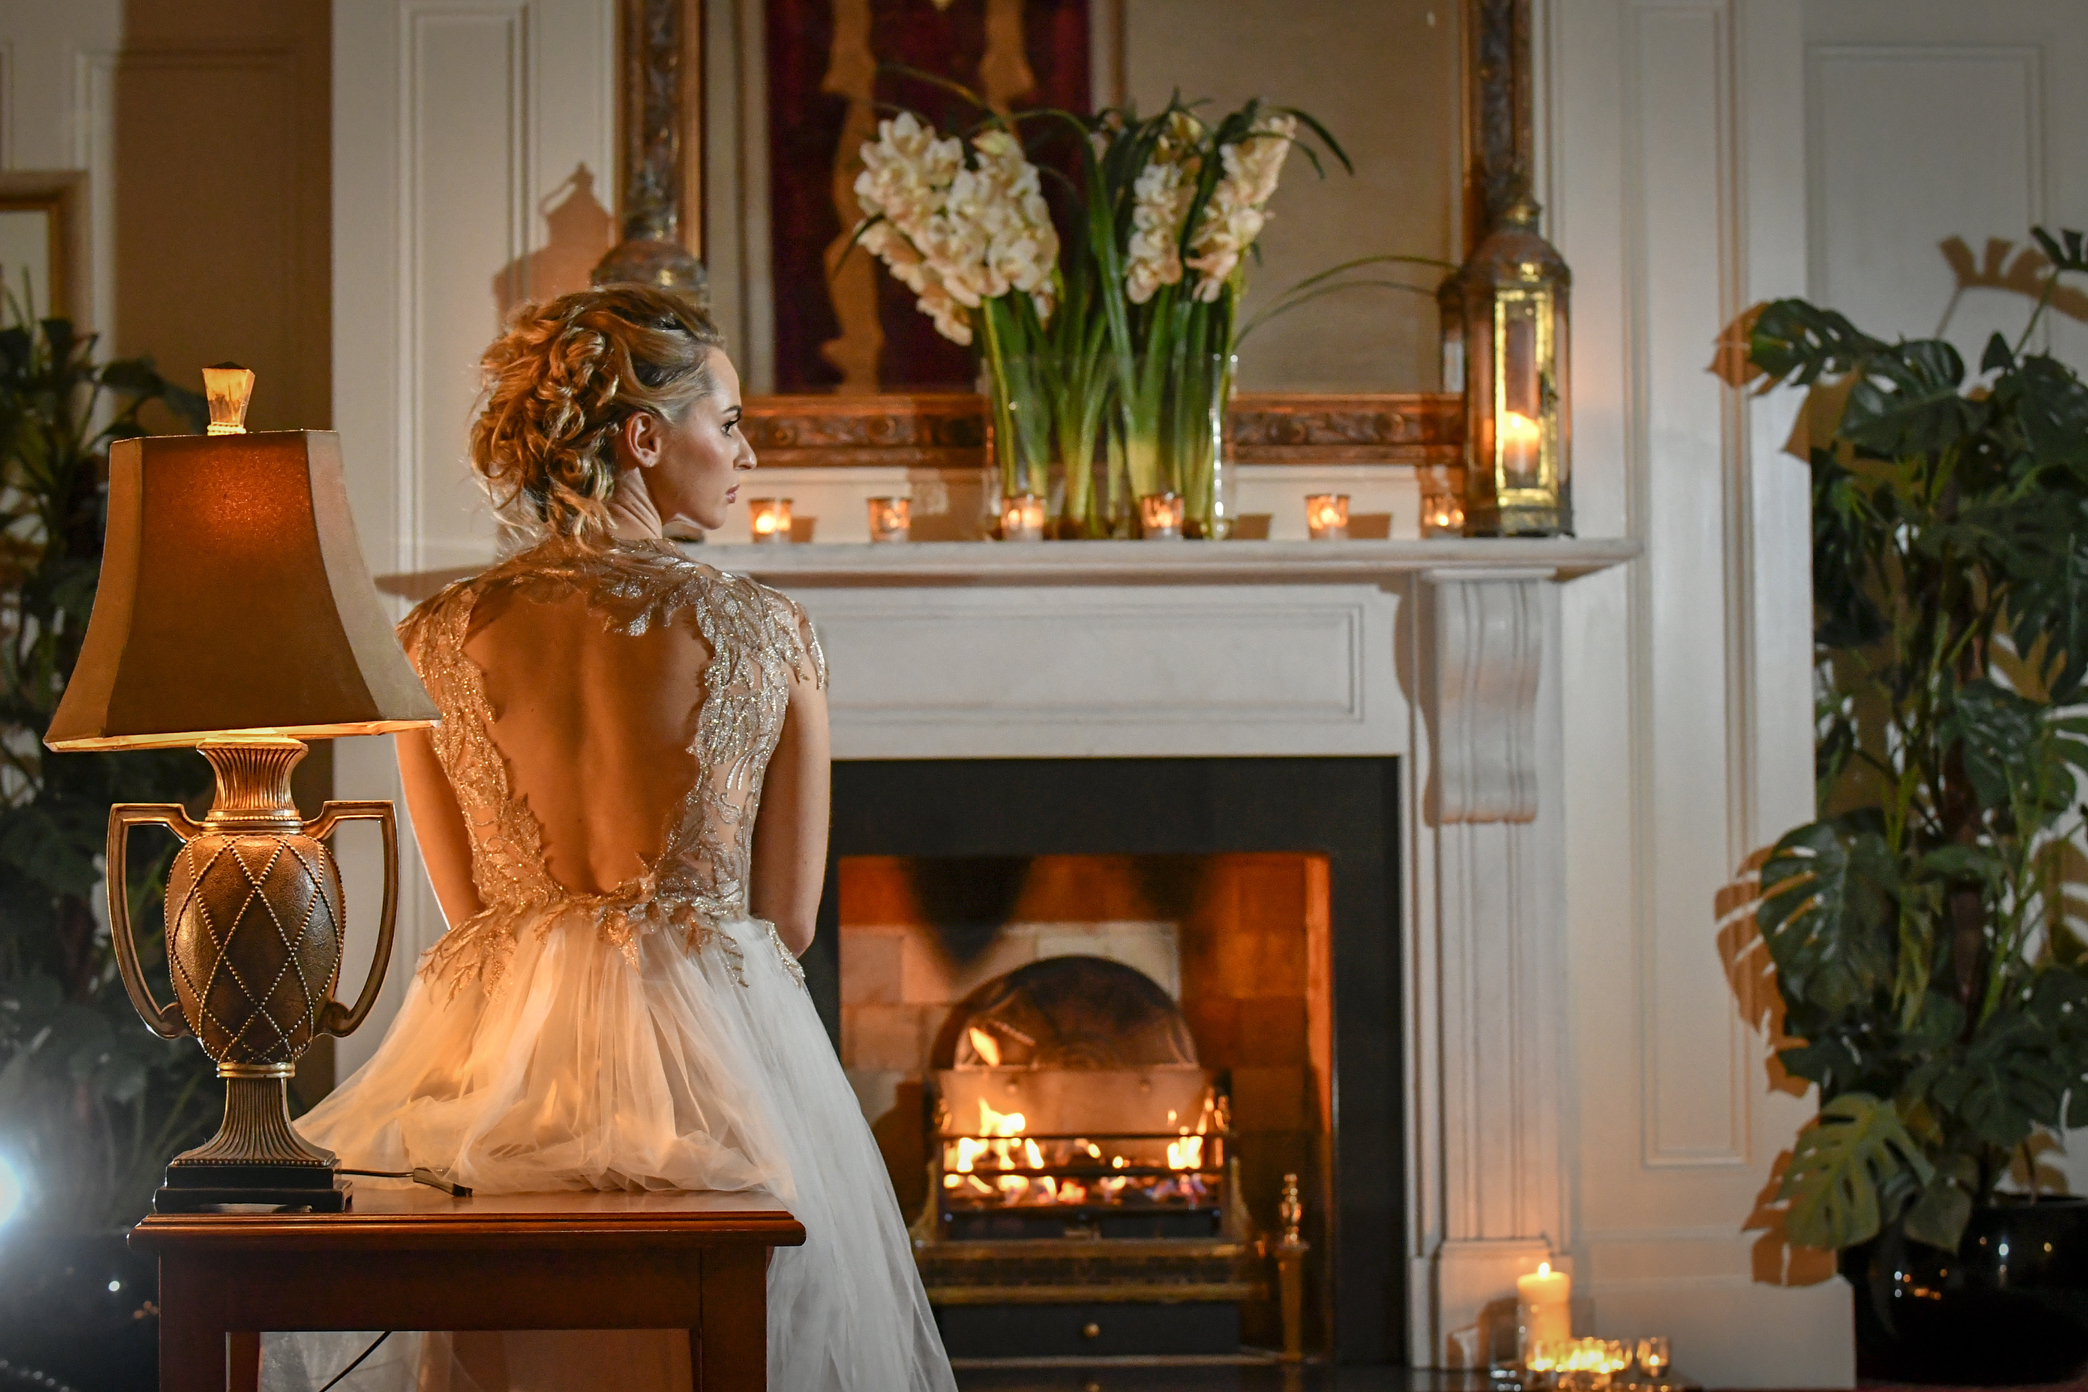 Bride sitting down facing fireplace - to be edited (1)-min